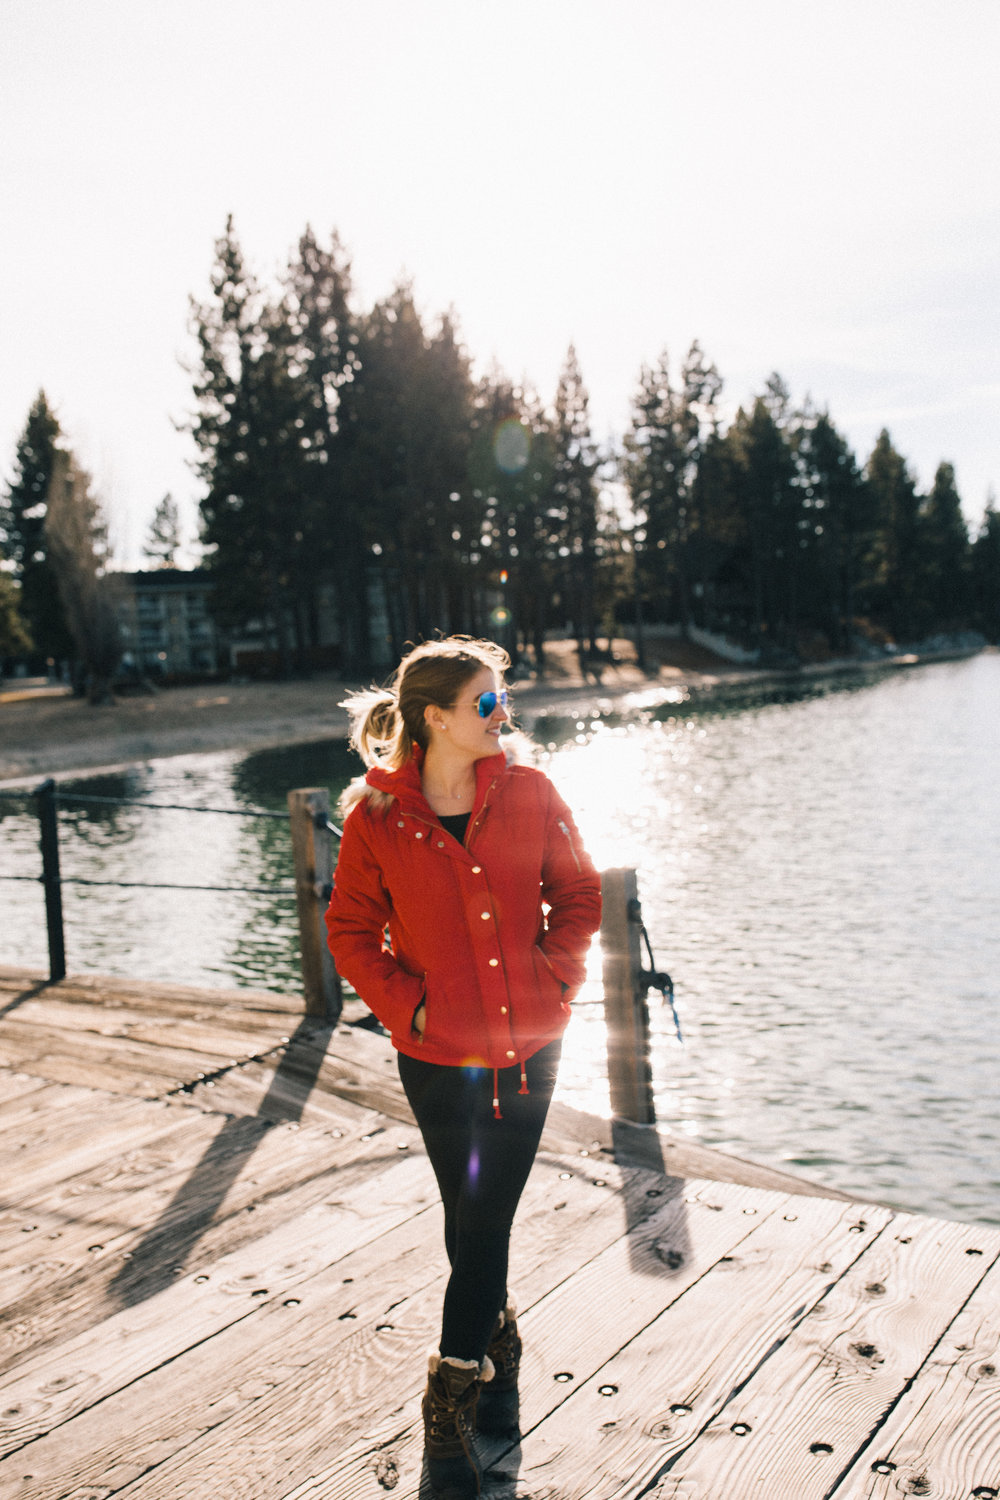 2018_01_01 Tahoe Trip 2018 Edited Full Resolution 0012.jpg